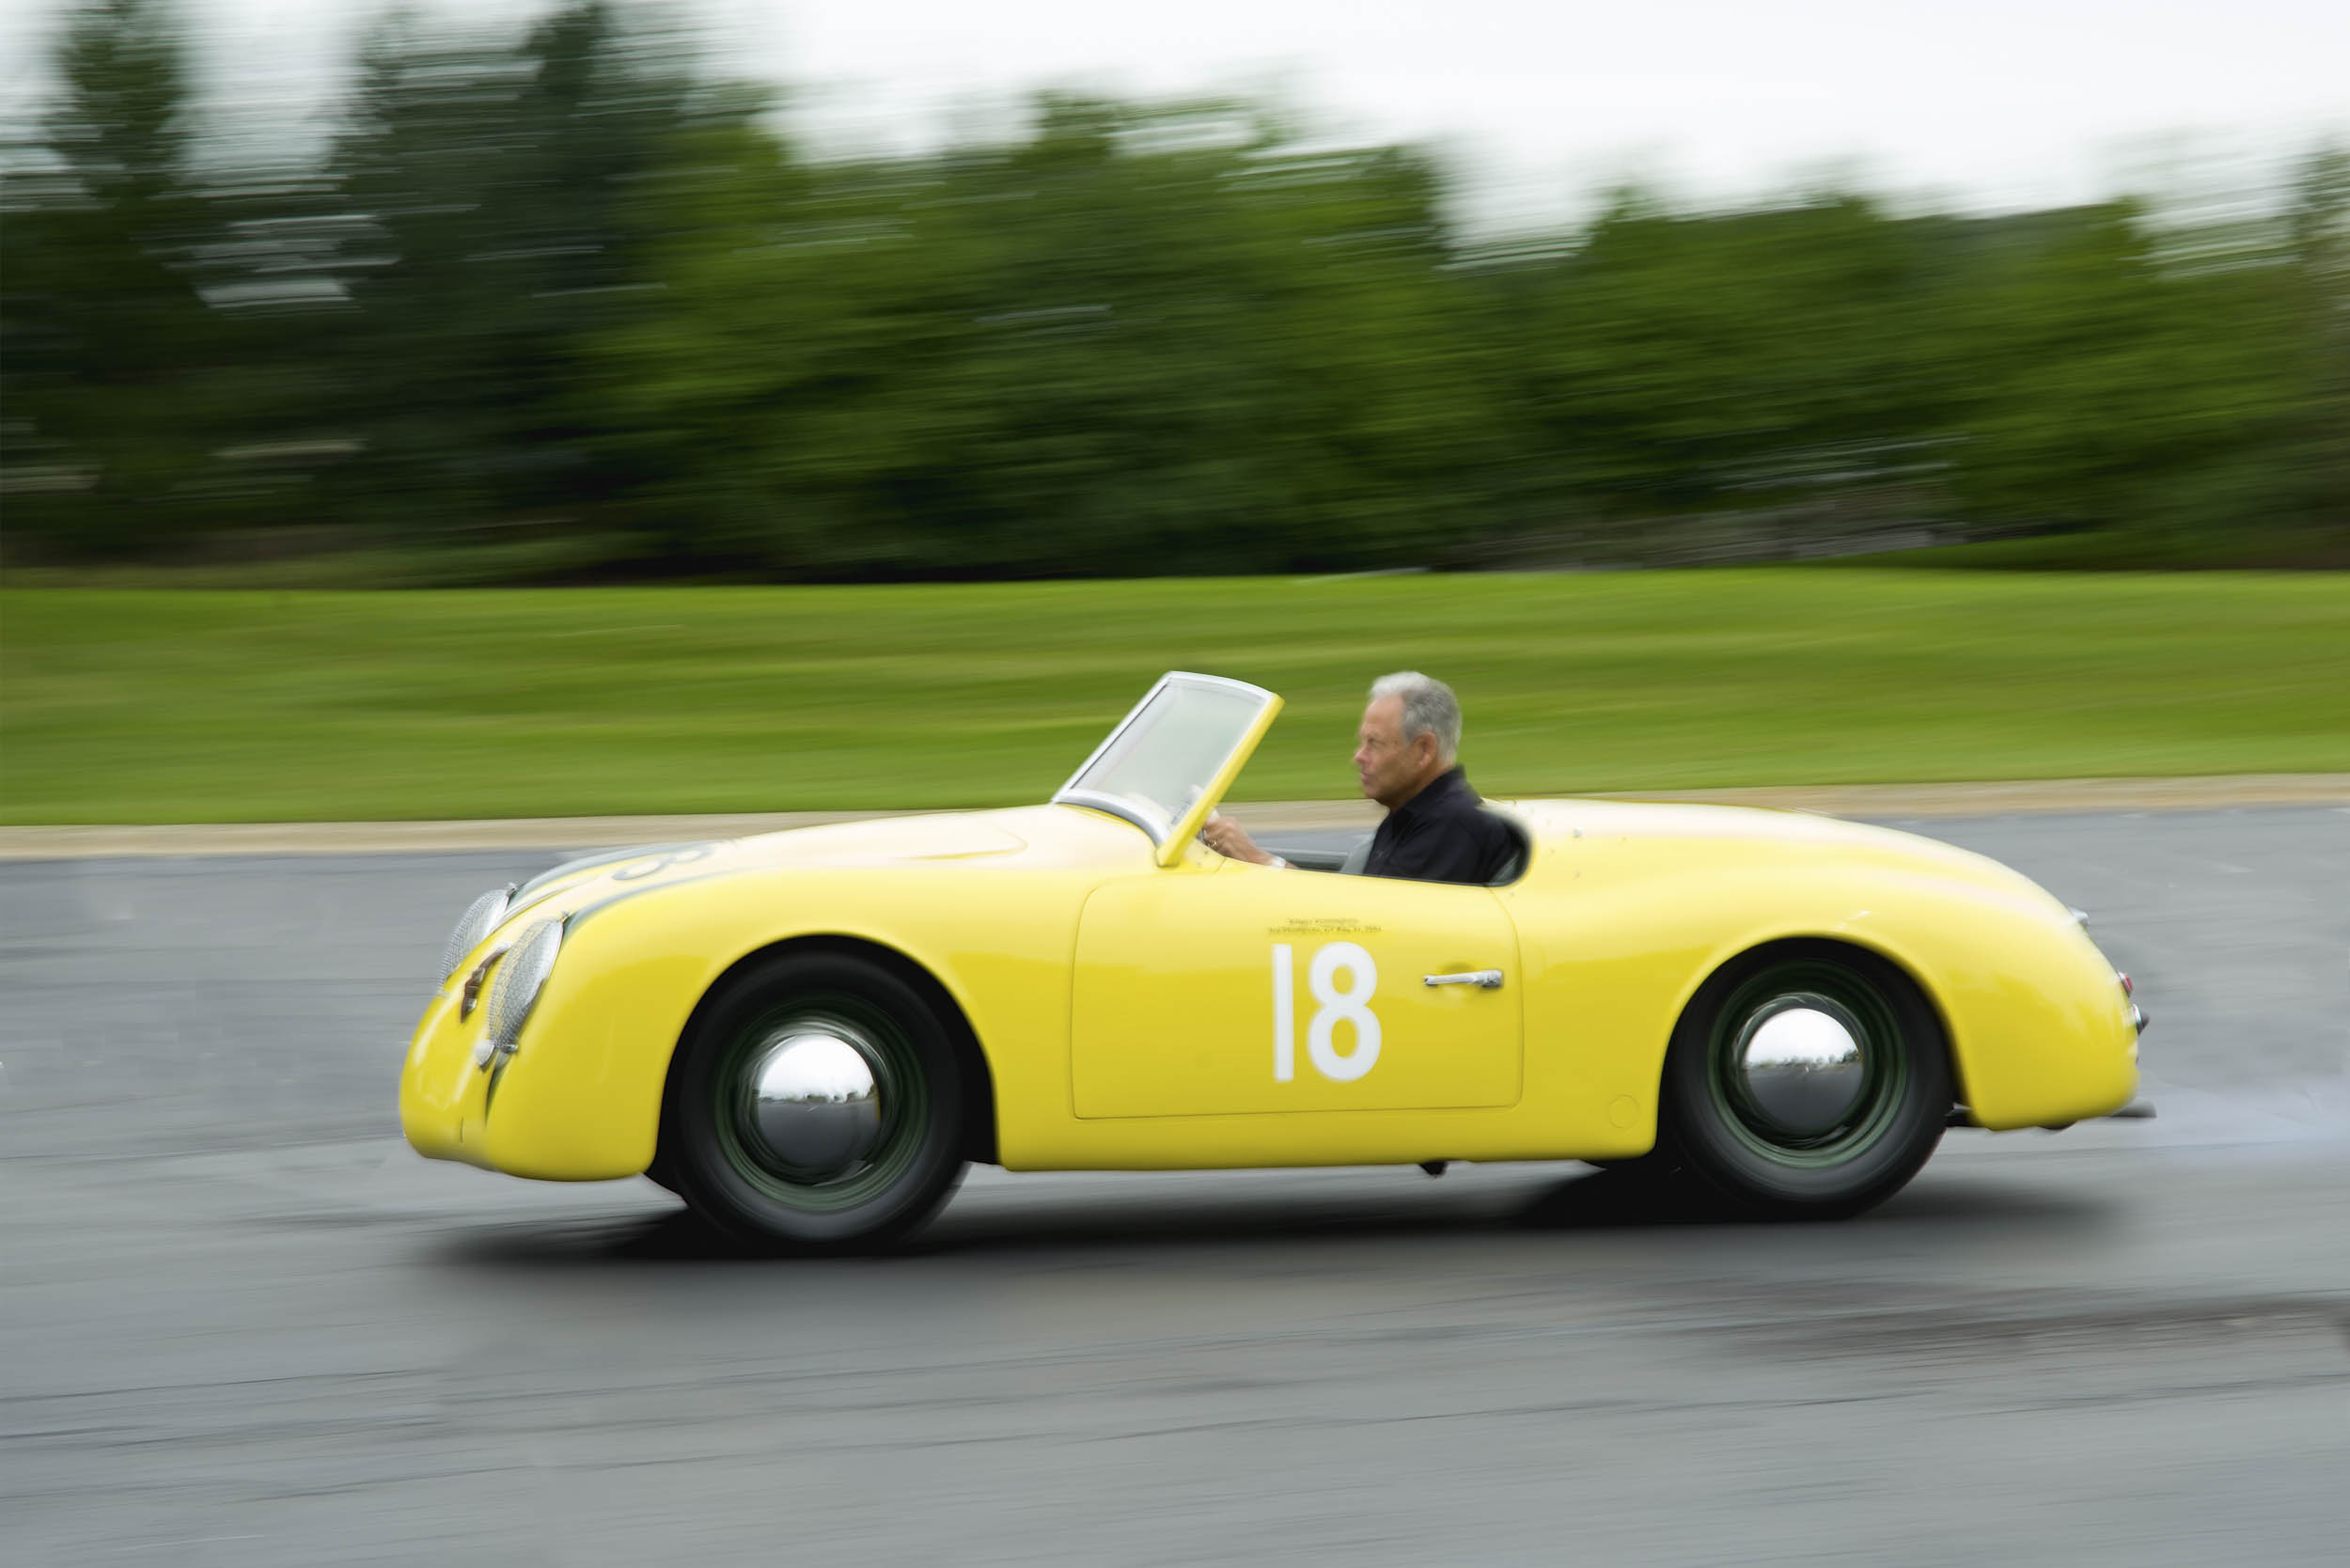 Rev. Ronald Roland drives his Porsche in the parking lot of the Inn at St. John's in Plymouth, Michigan. At a mere 1581 pounds, the car's 75-horsepower boxer four renders it a responsive ride. When Brigg's Cunningham Jr. drove the car in competition, it wore number 18.